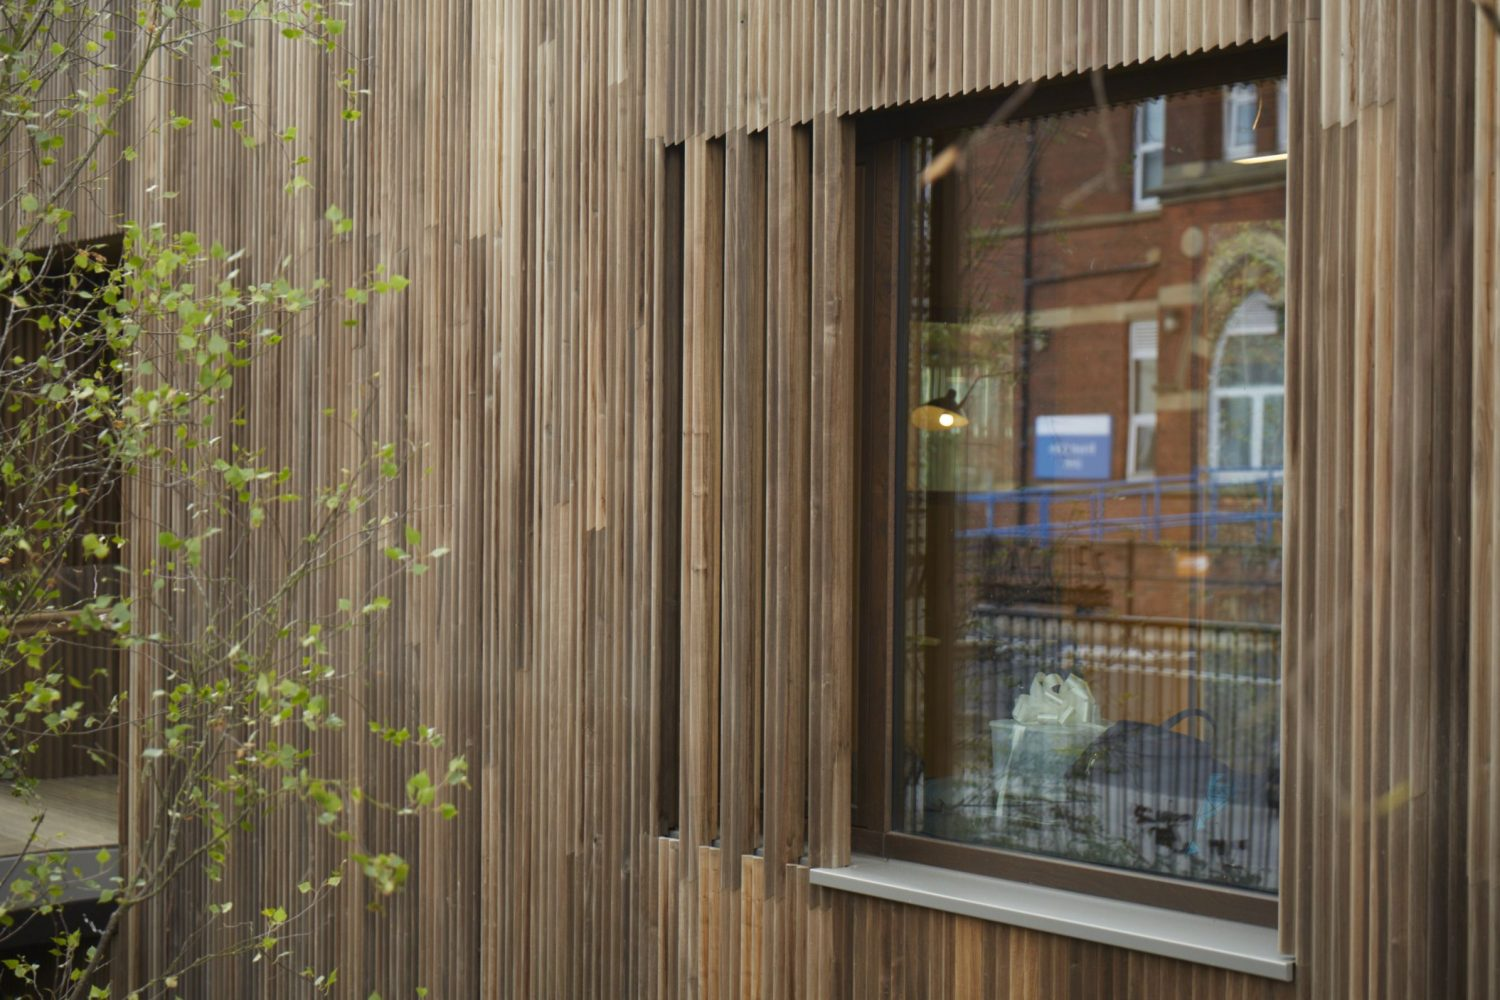 Pictures: dRMM Architects A.deRijke/Jon Cardwell/Morgan Timber